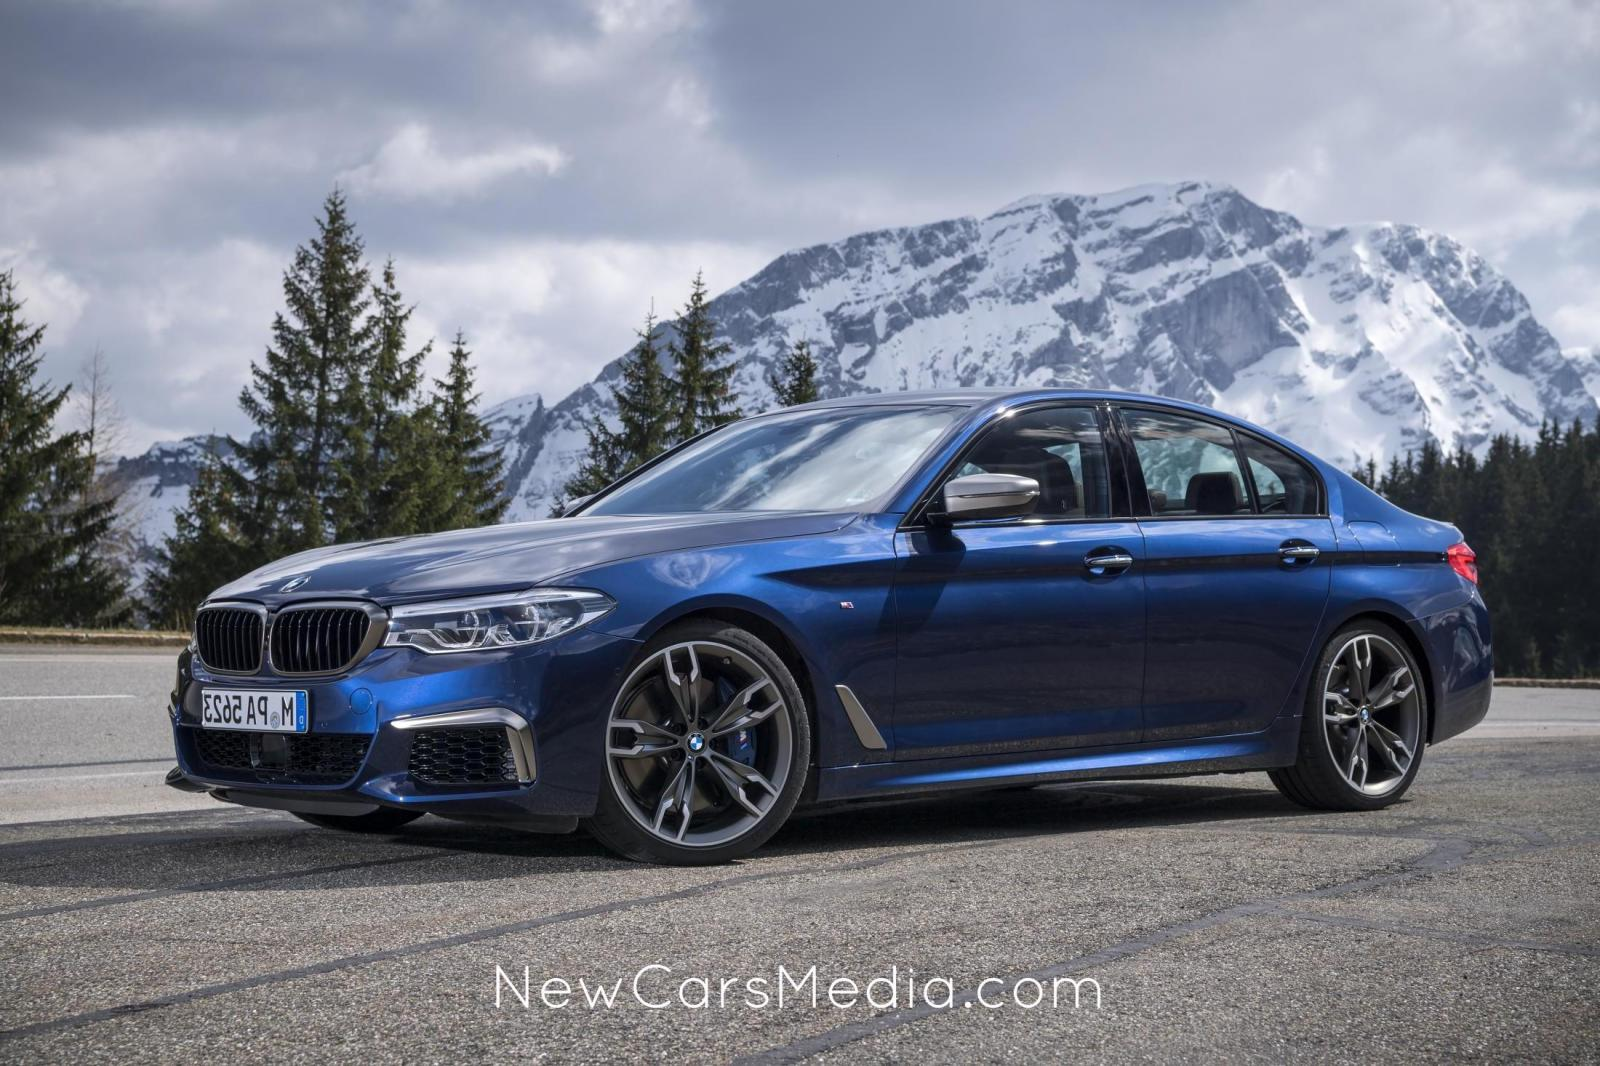 bmw m550d xdrive 2018 review photos specifications. Black Bedroom Furniture Sets. Home Design Ideas